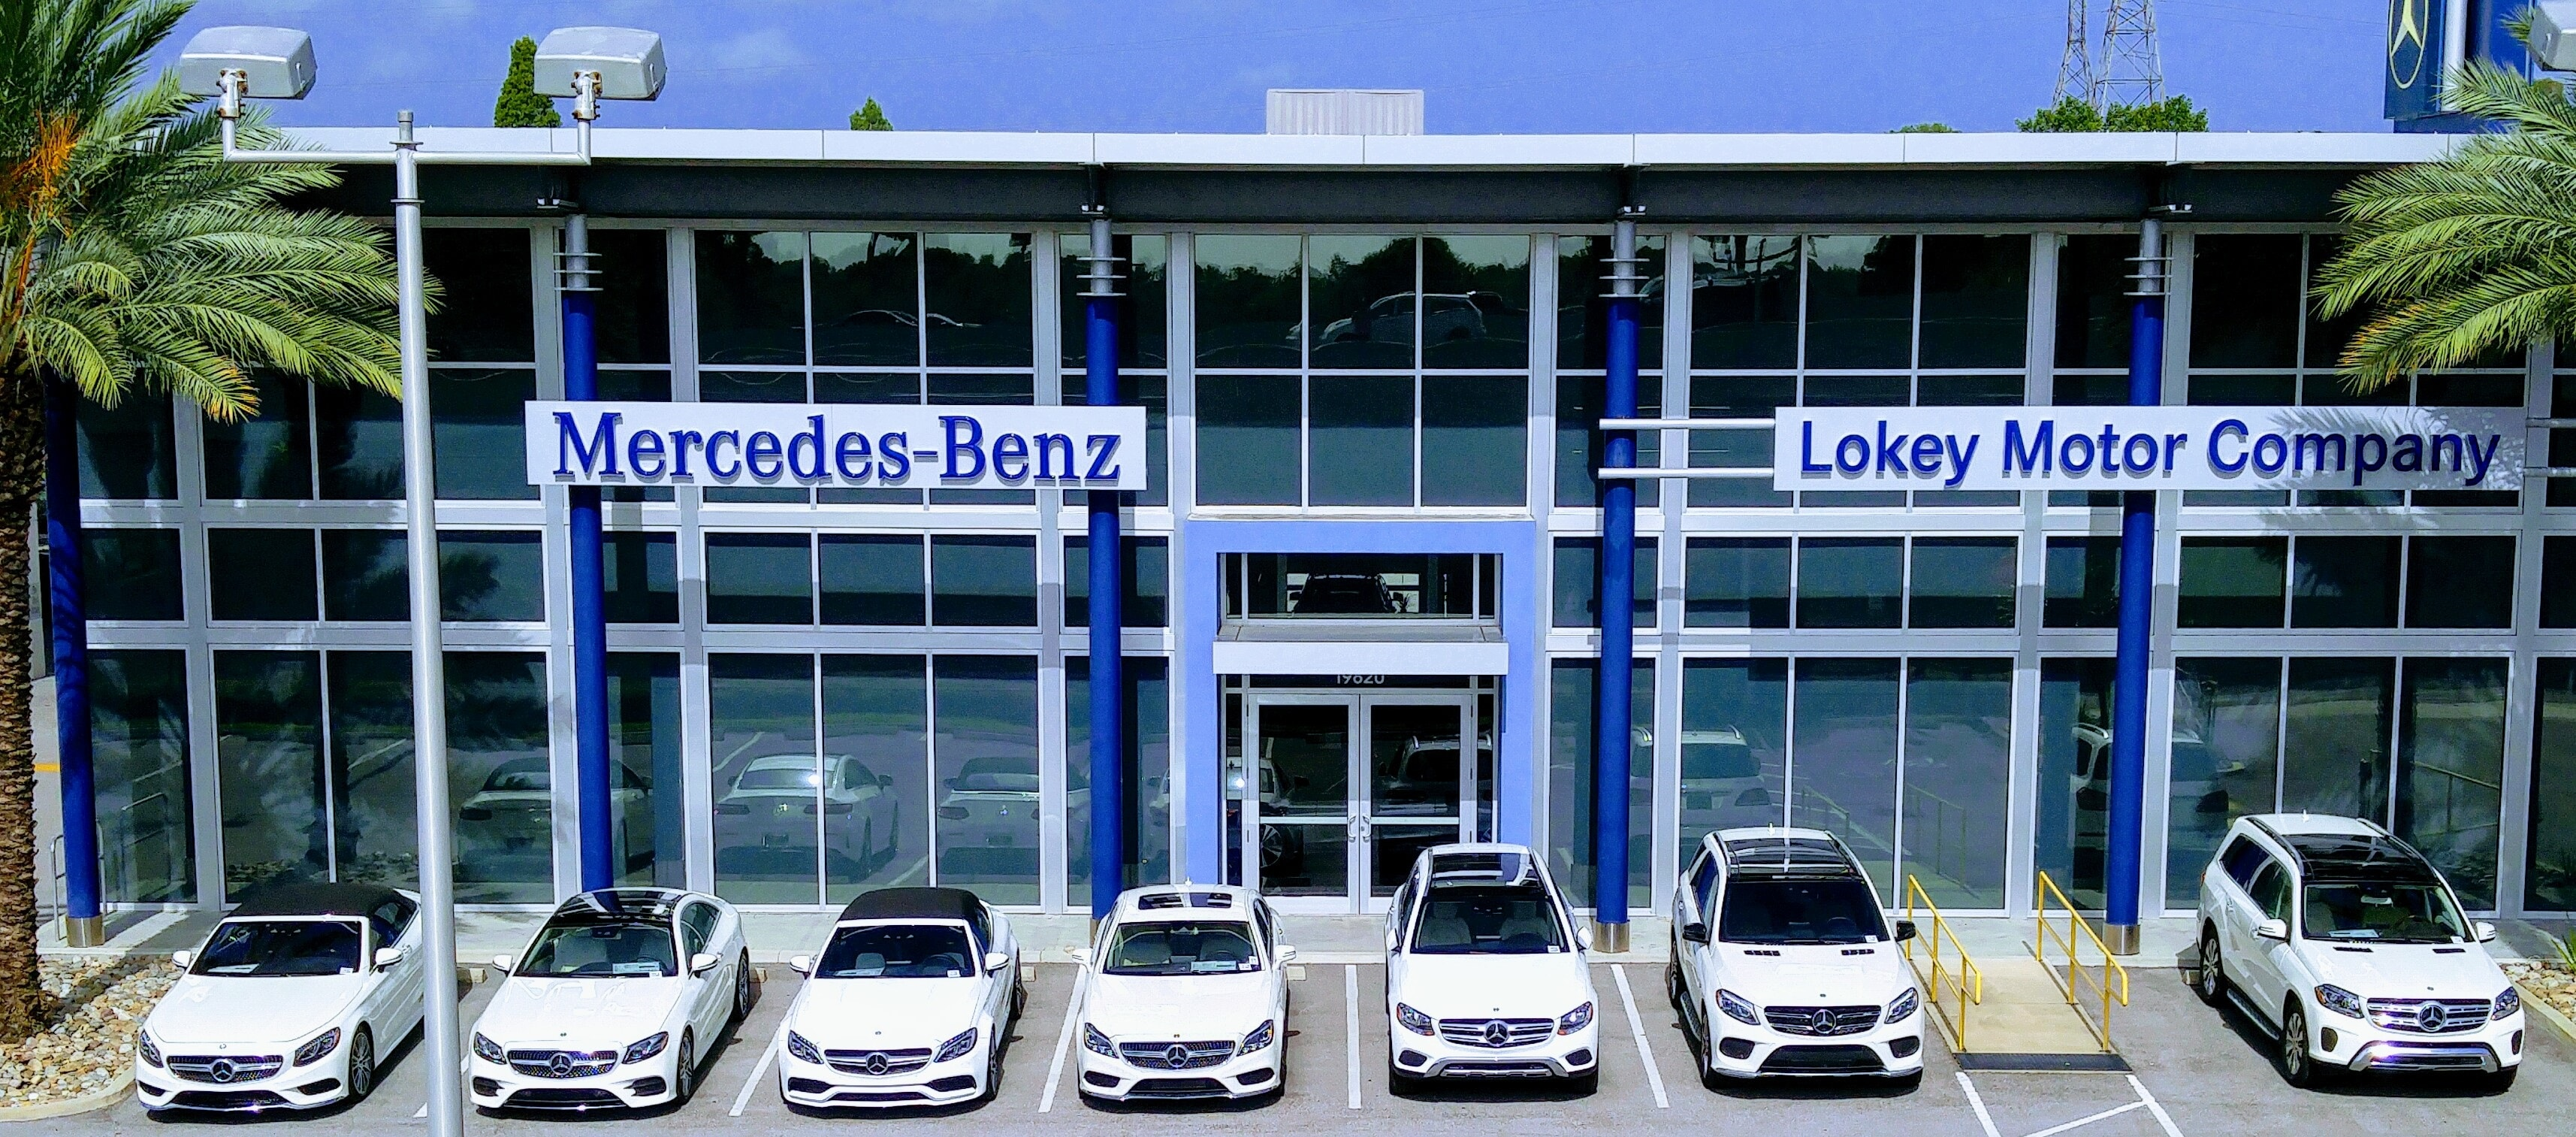 About lokey motor co new mercedes benz and used car for Mercedes benz dealer in tampa fl